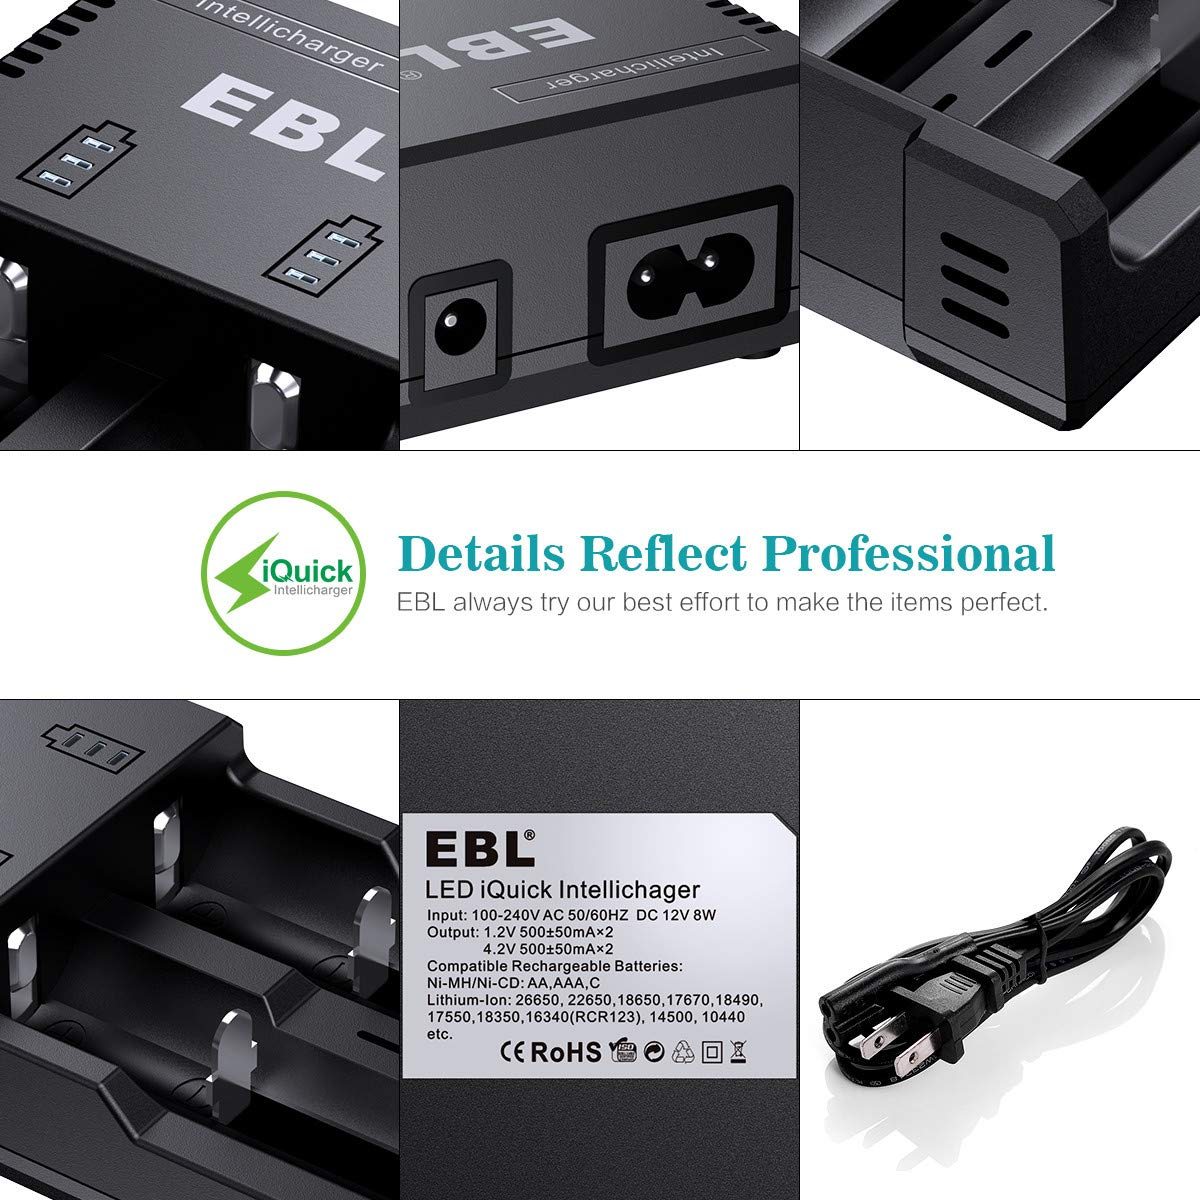 EBL Universal Rechargeable Battery Charger for Ni-MH/Ni-CD AA AAA C Rechargeable Batteries and 3.7V Li-ion Batteries 18650 18490 18350 17670 17500 16340(RCR123) 14500